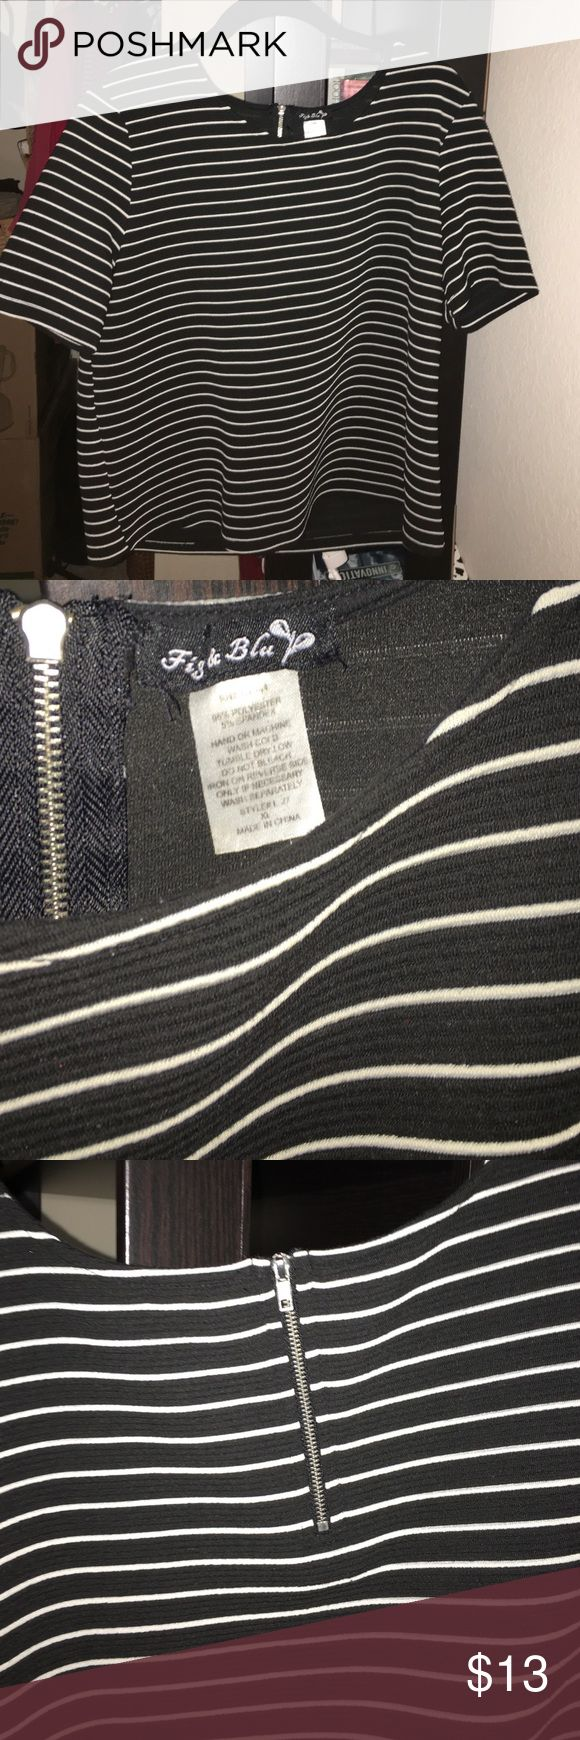 Black and White Striped Thick Top I found this top at Burlington Coat Factory that is made of thick material for winter. Worn twice and in perfect condition! Fig 8C Blue Tops Tees - Short Sleeve